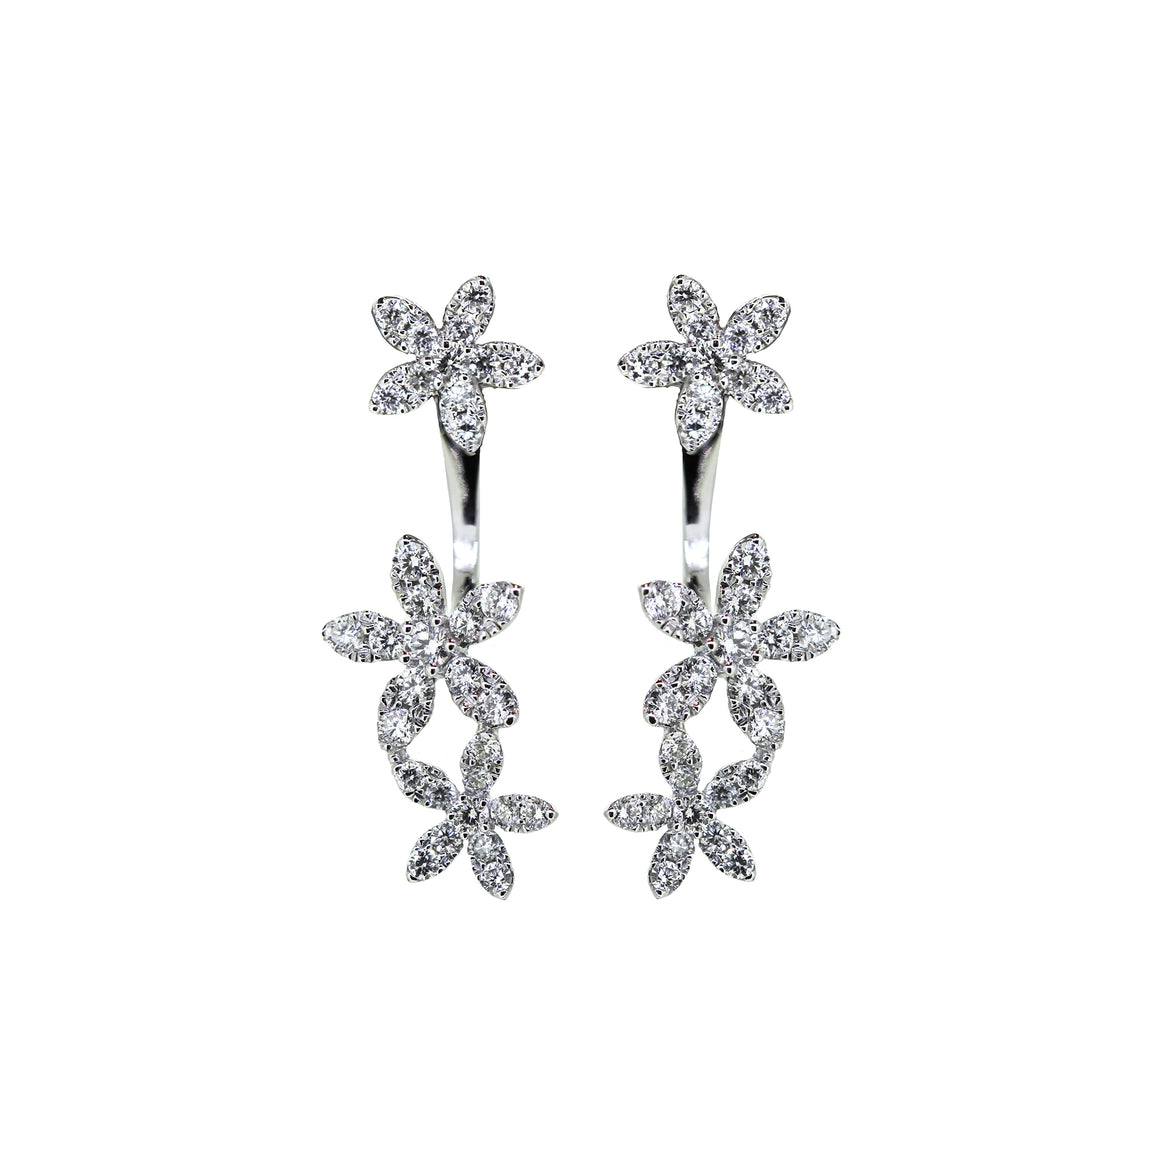 Daisy Chain diamond earrings